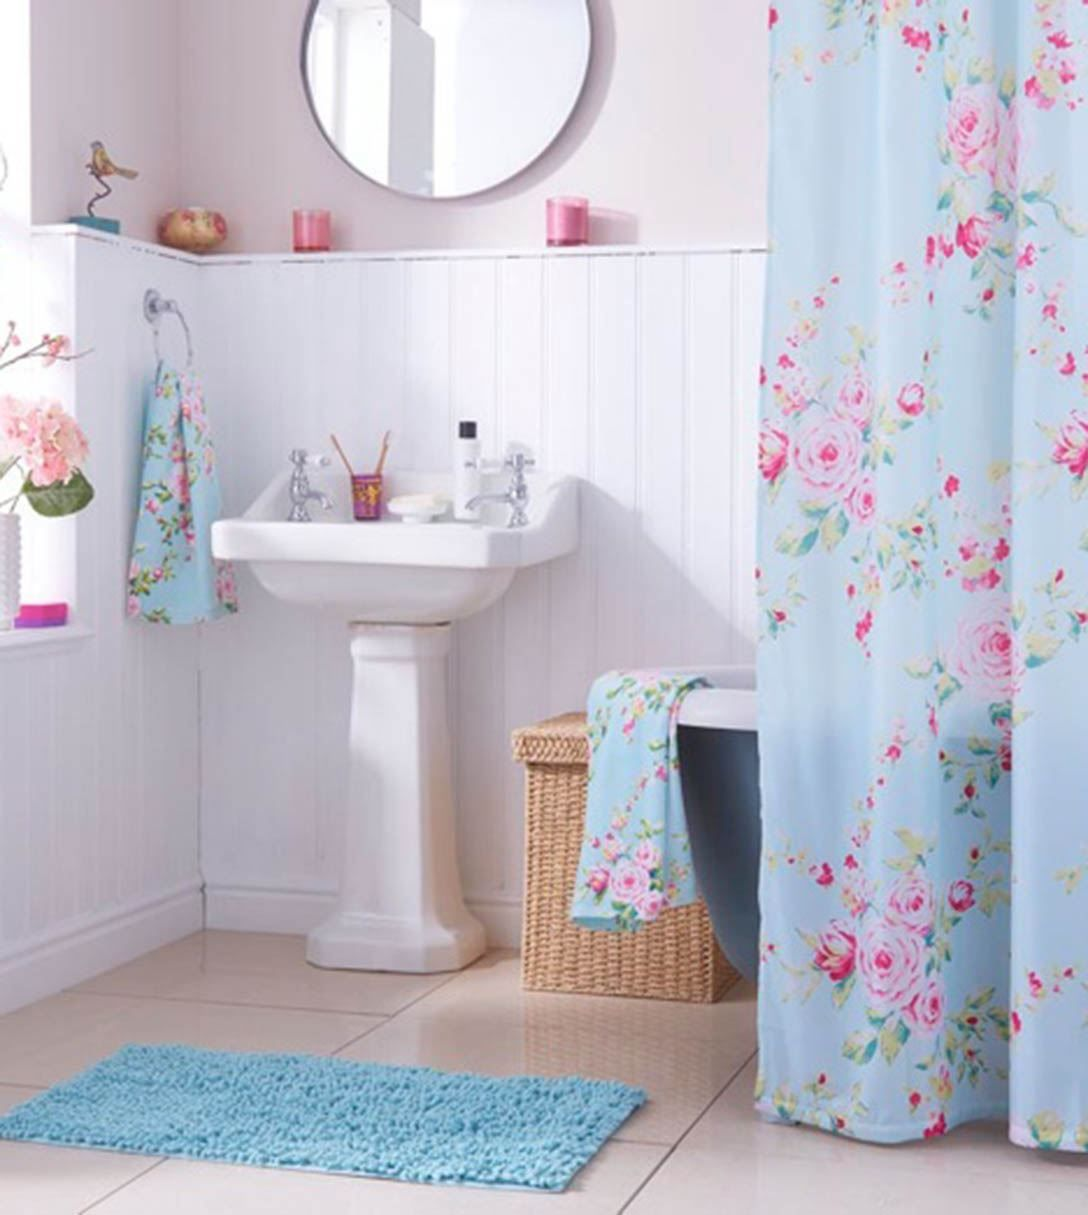 Blue bathroom curtains - Canterbury Bath Range Towels Mat Shower Curtain Floral Blue Bathroom Accessories In Home Furniture Diy Bath Shower Curtains